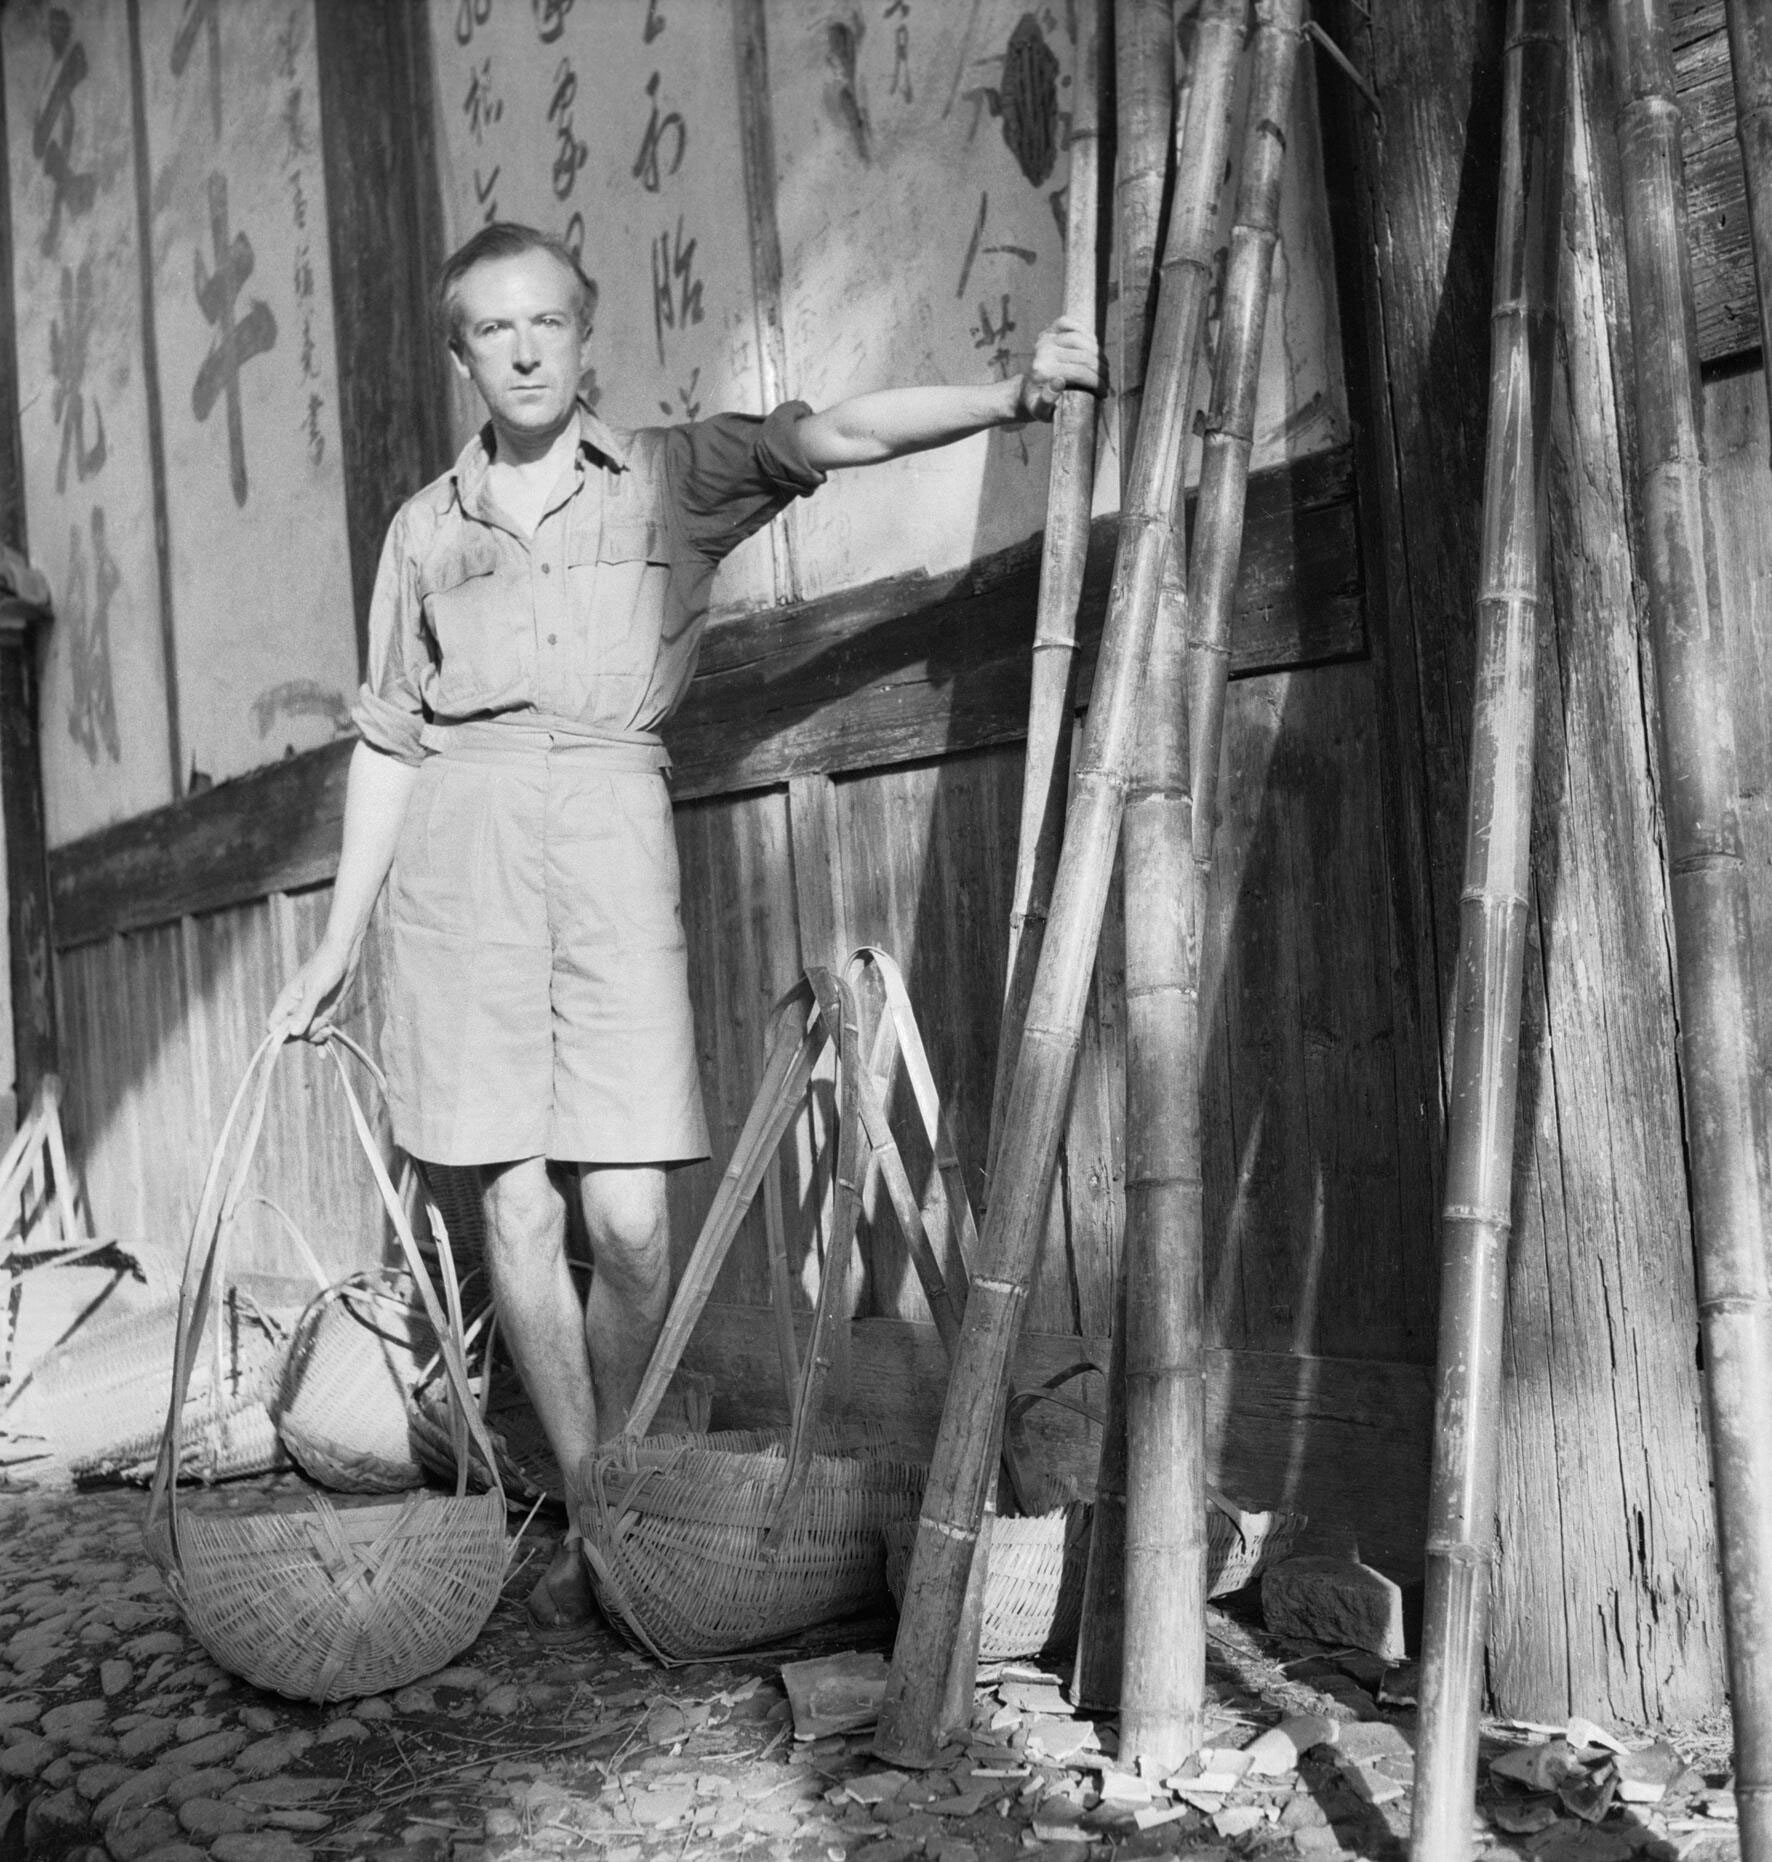 Cecil Beaton with wicker baskets beside a wall with Chinese characters in Puncheng in south eastern China, during World War II. Image courtesy of the Ministry of Information, via Wikimedia Commons